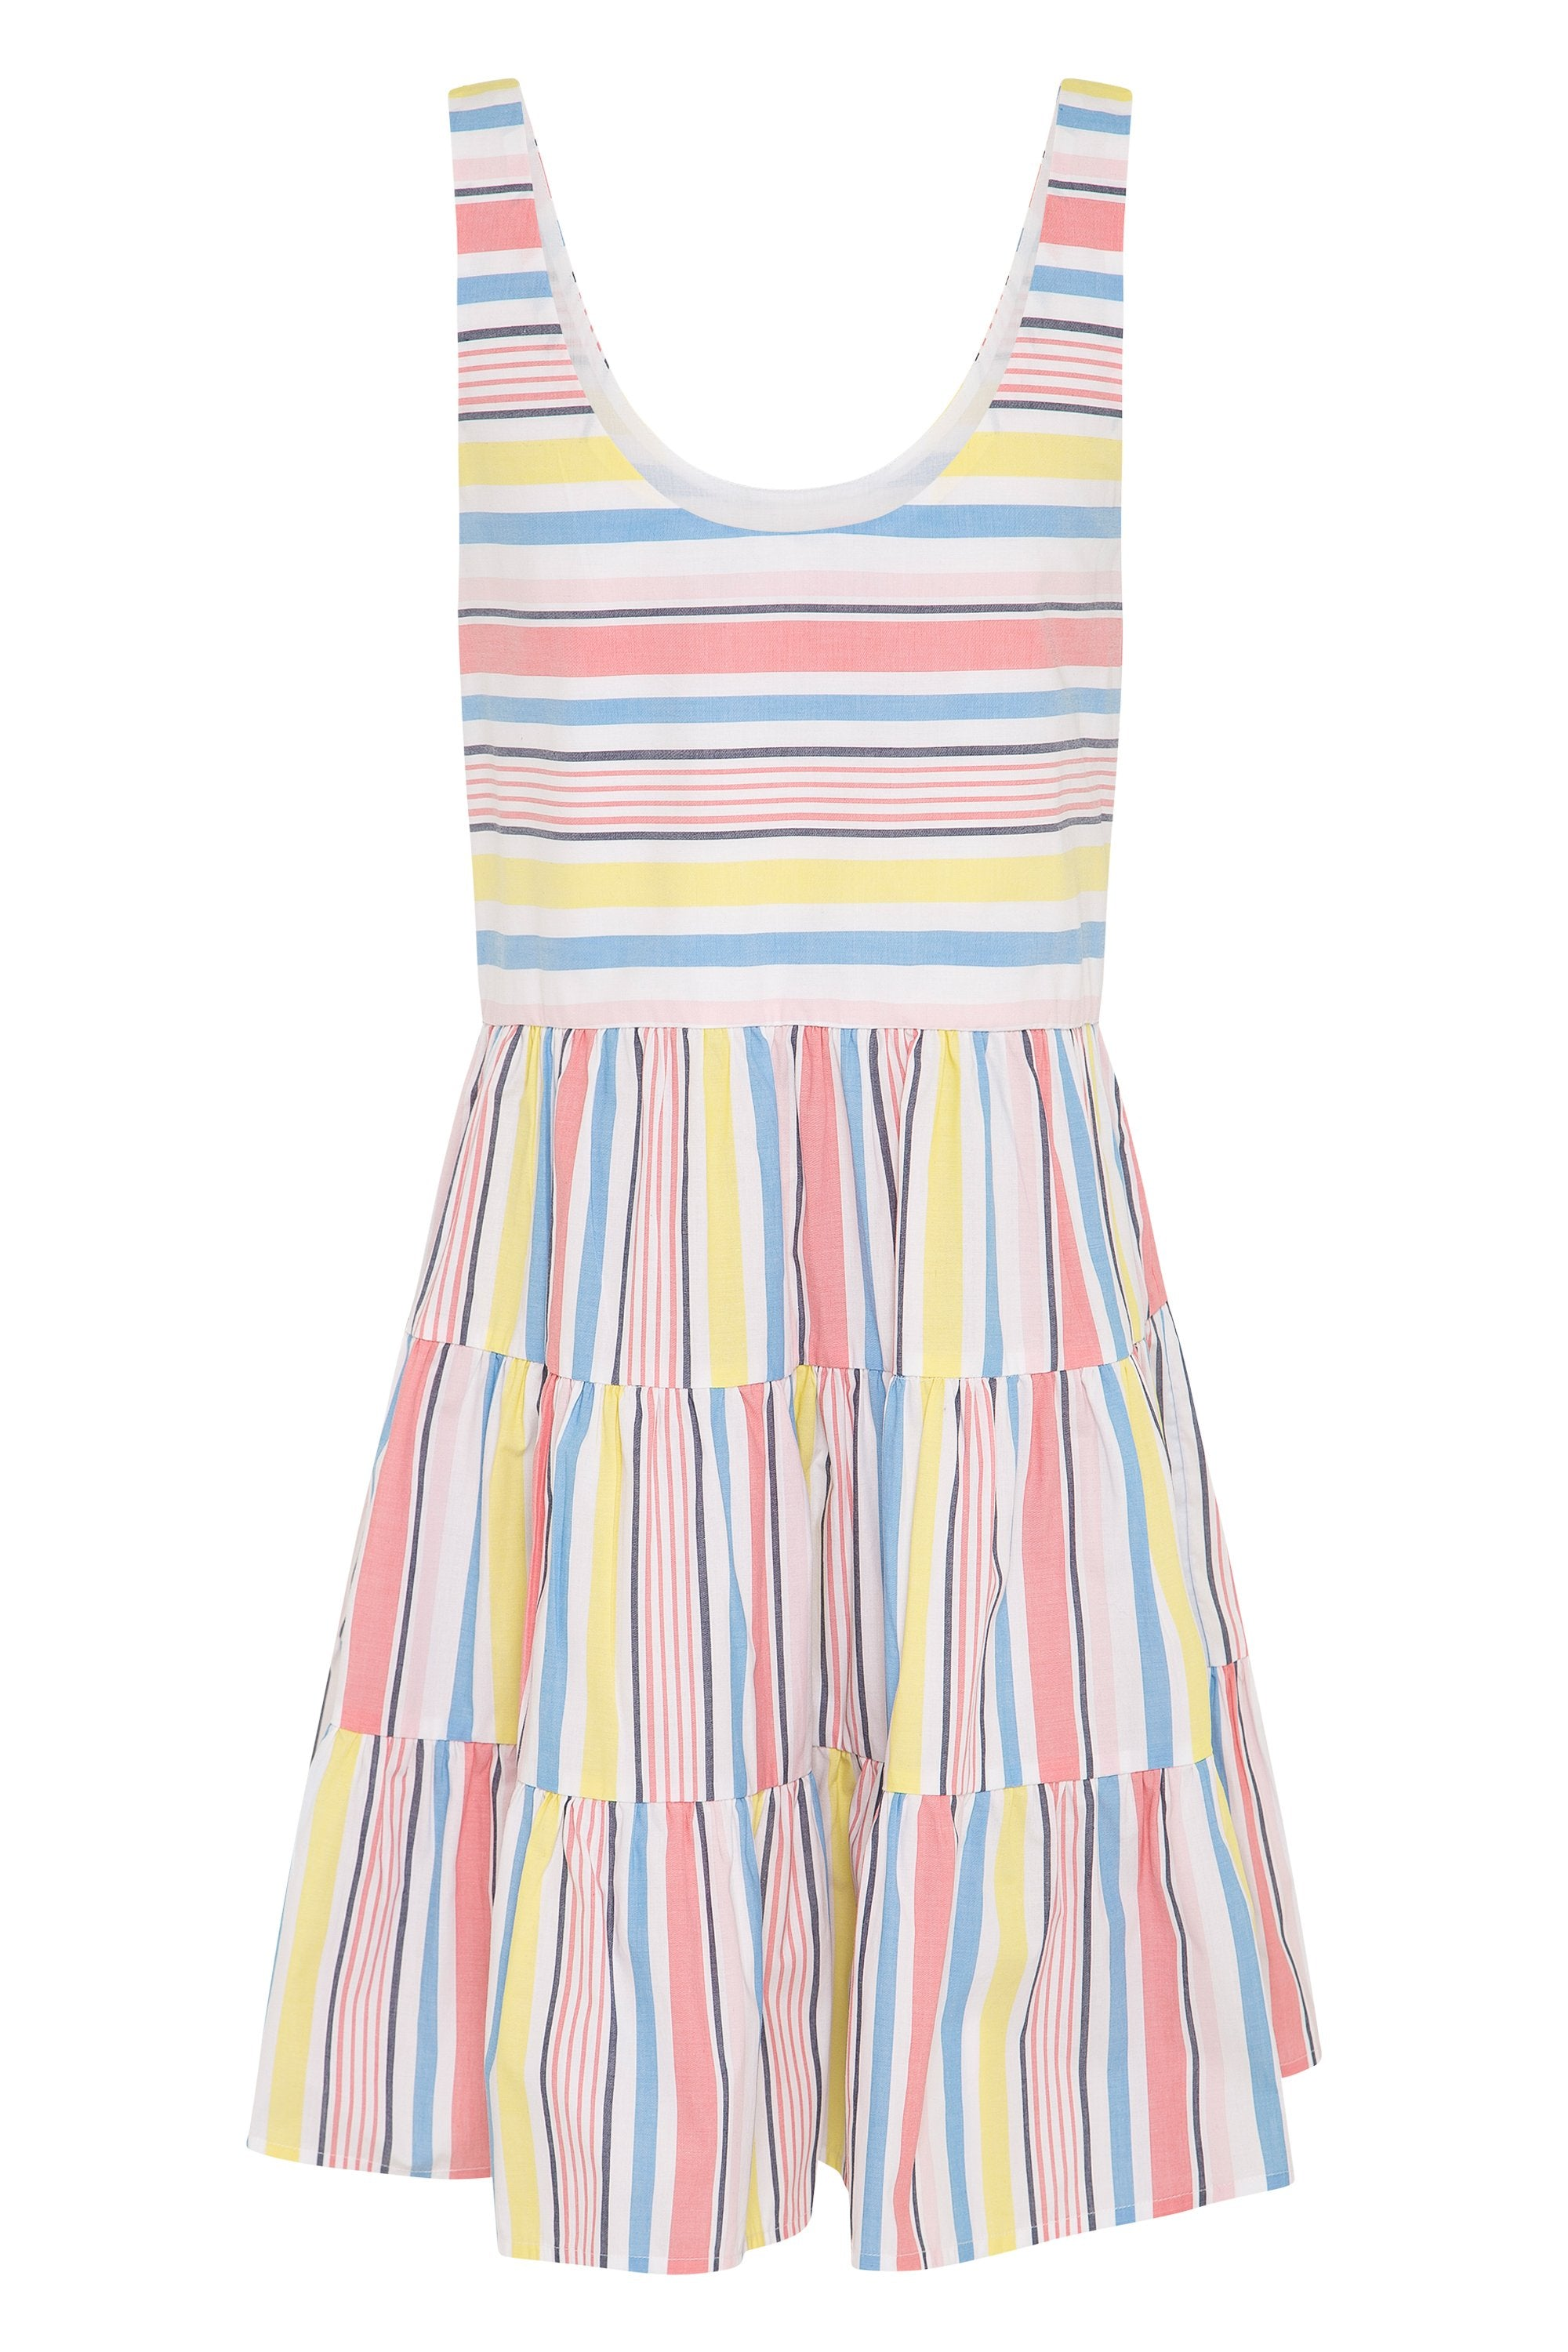 Winifred Dress In Summer Stripe